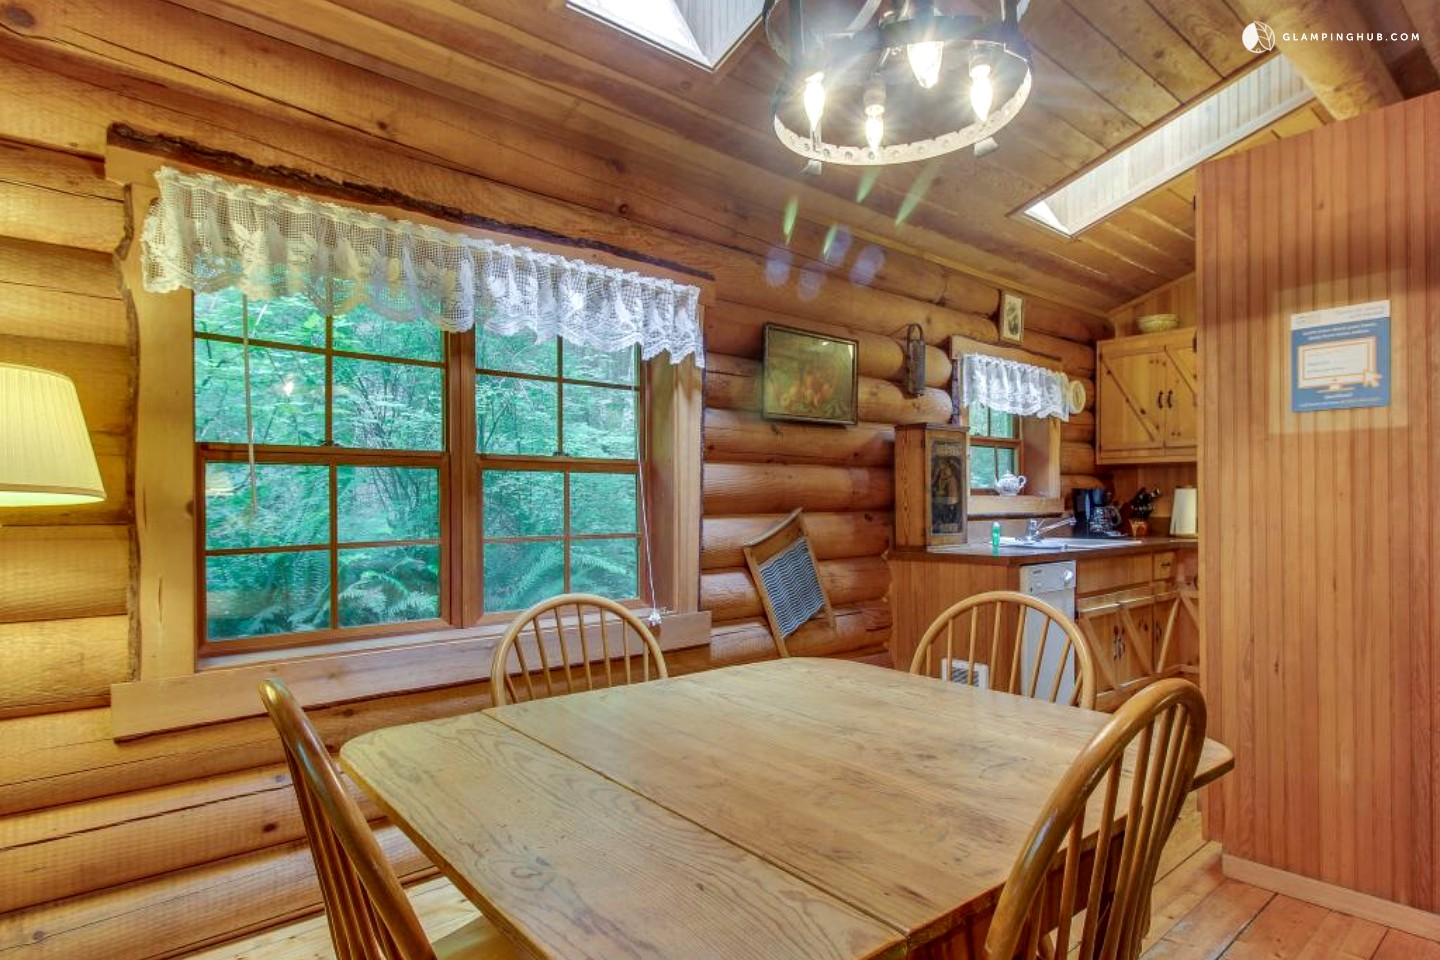 Romantic cabin near deception pass state park at whidbey for Washington state park cabins